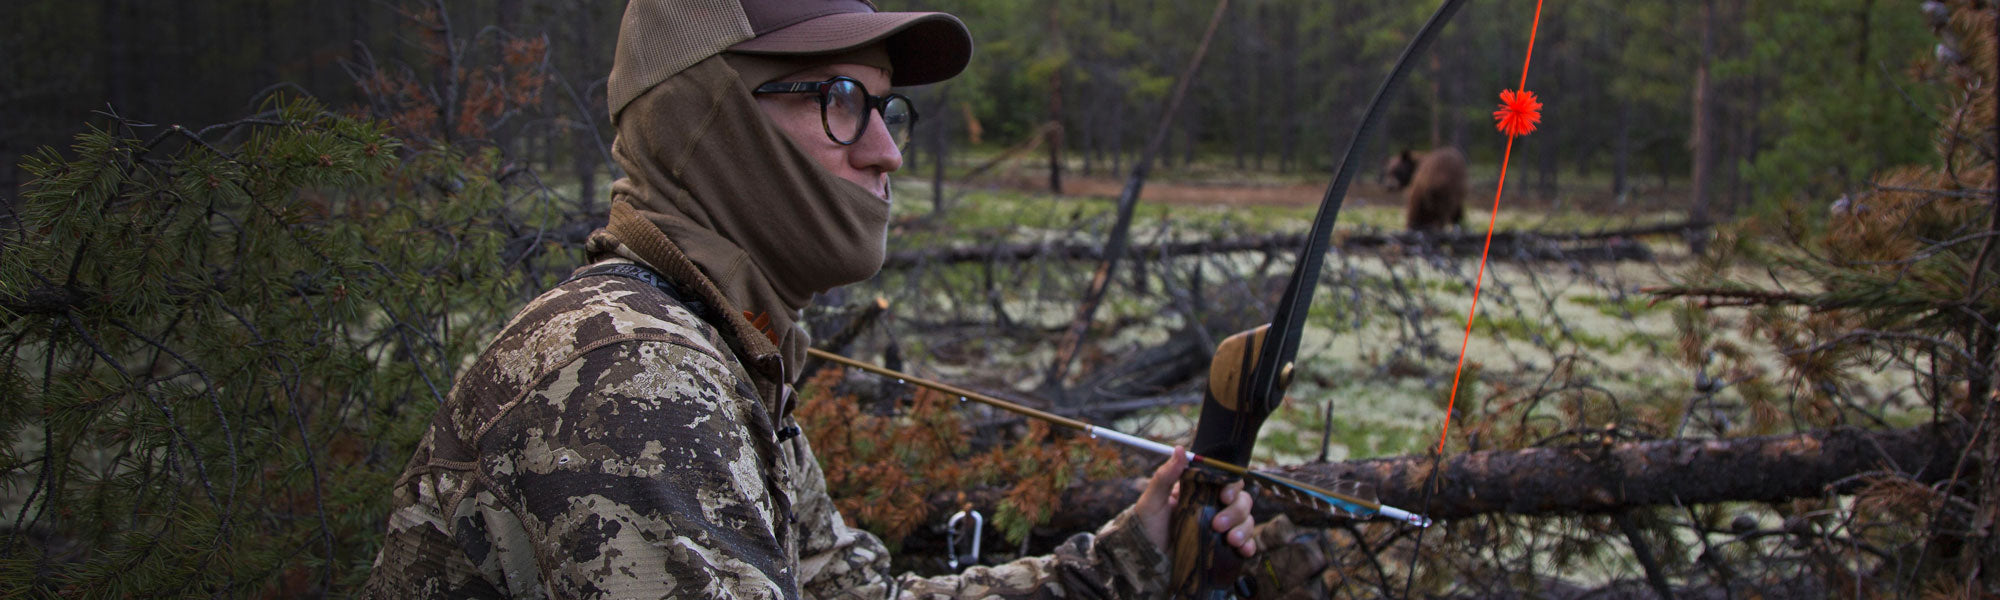 dbeb801dcc1ea Team – First Lite Performance Hunting